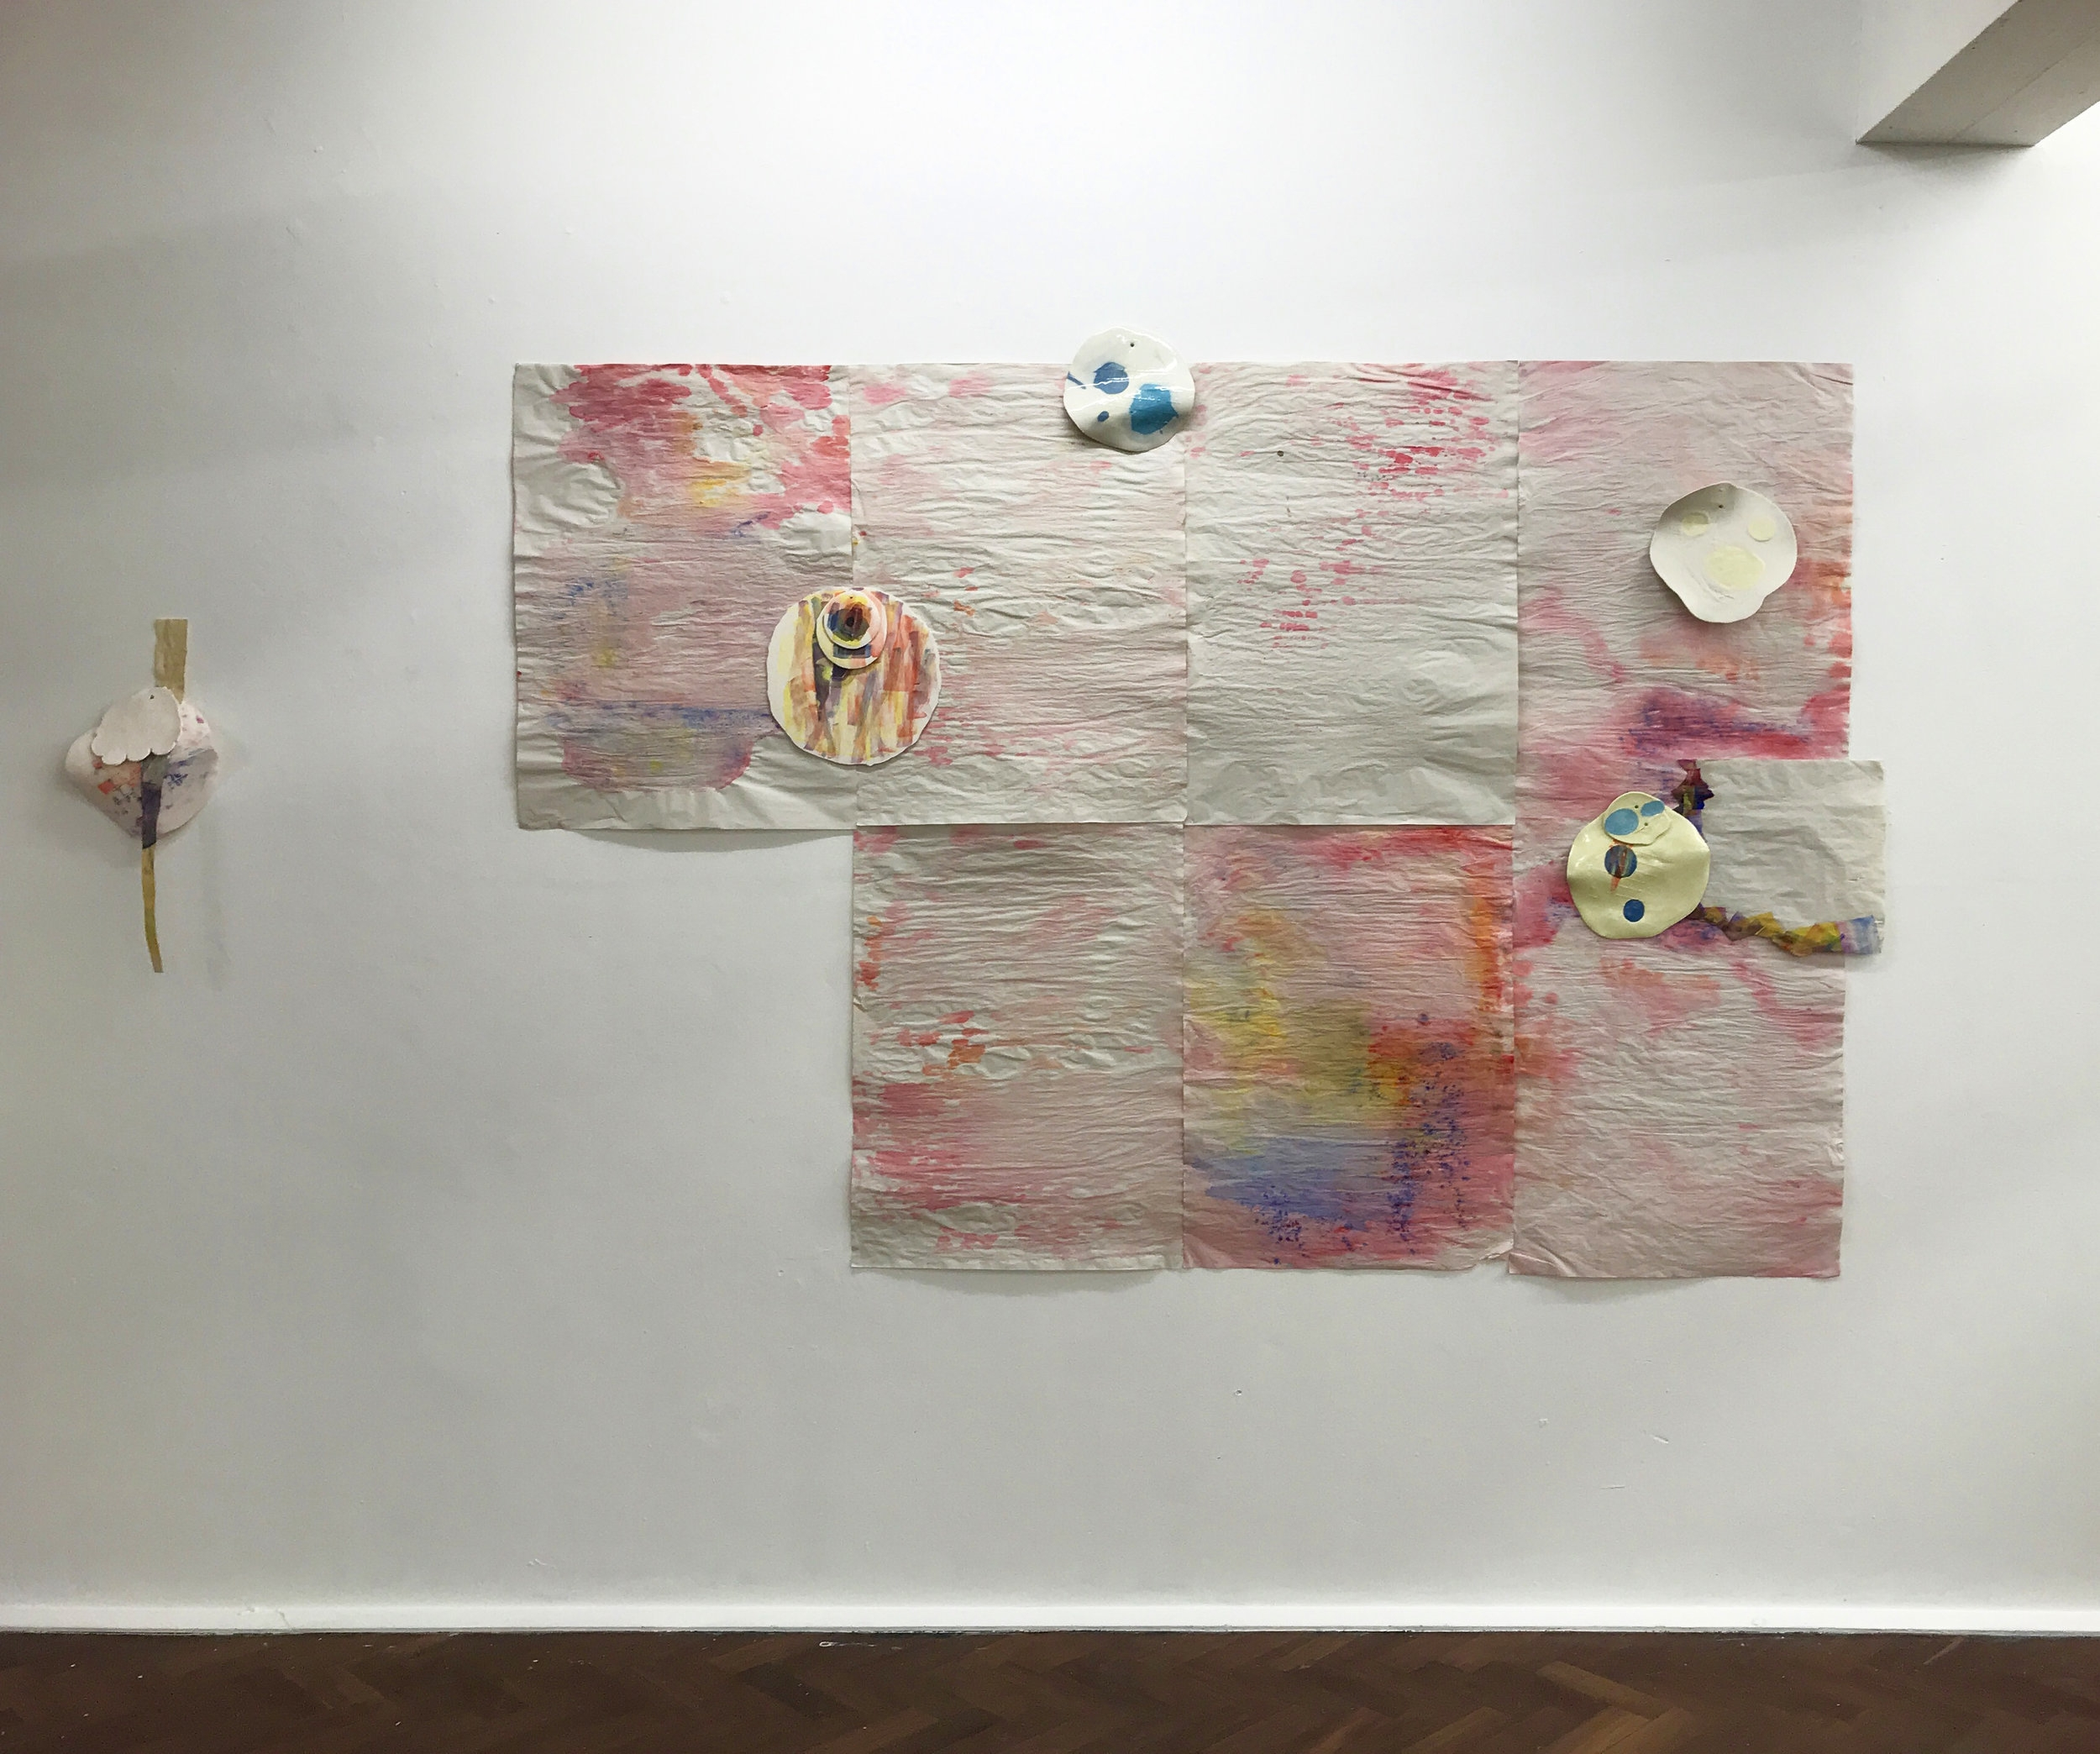 Installation for London Creative Network, SPACE, March 2018, watercolour on paper, oil paint, digital transfer, glazed and unglazed porcelain